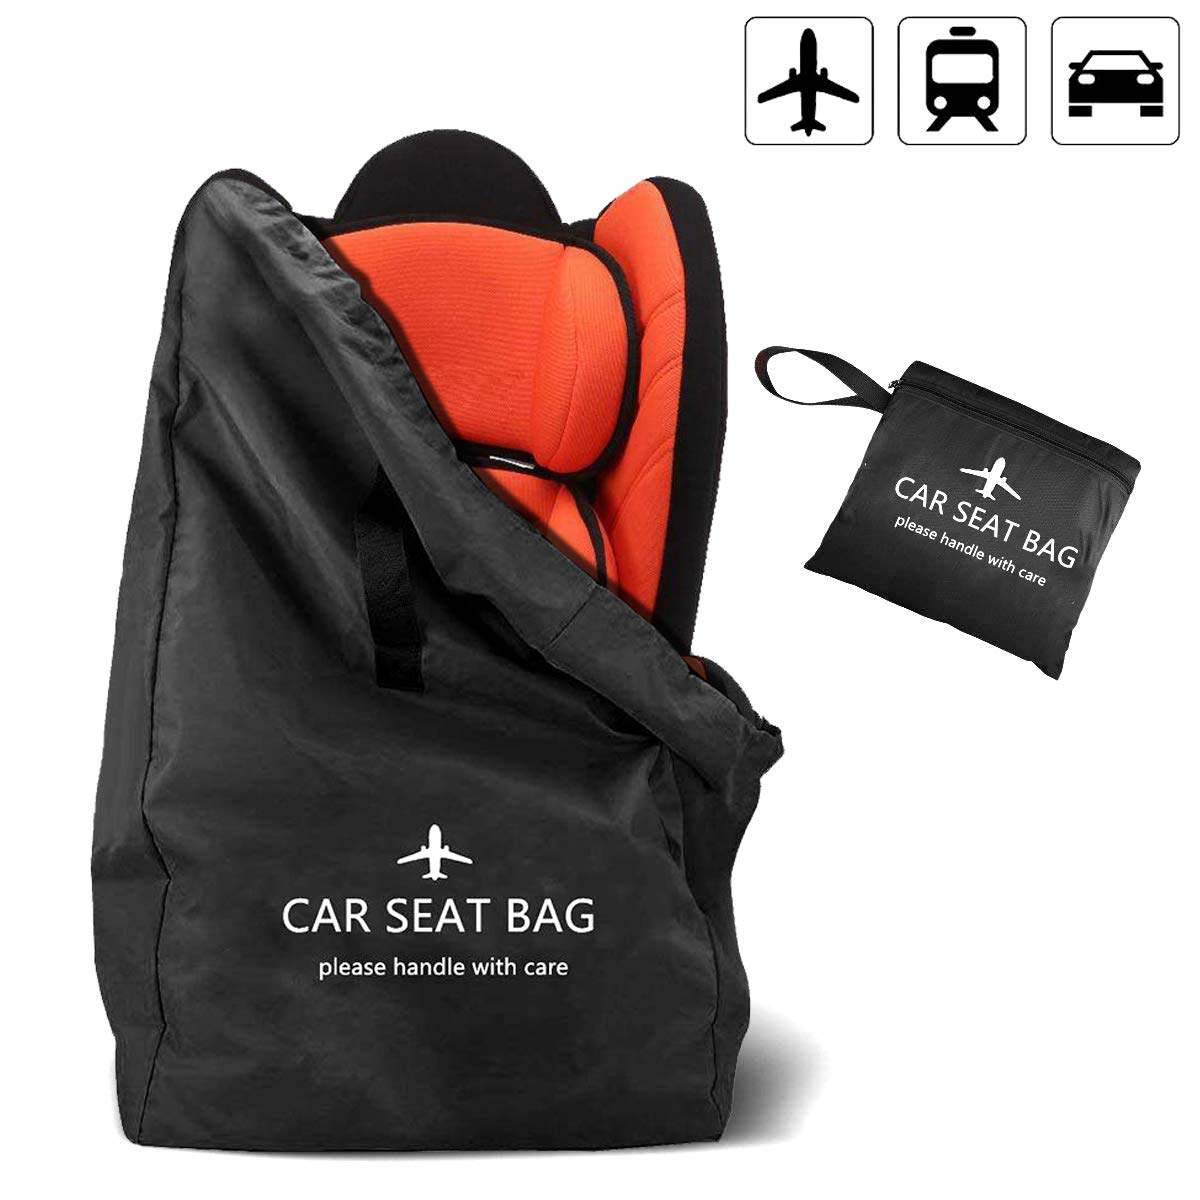 Ceekii Convertible Car Seat Travel Bag for Airplane - Baby Gate Check Travel Bag with Backpack Shoulder Straps - Portable Car Seat Backpack for Air Travel - Foldable with Pouch by CeeKii